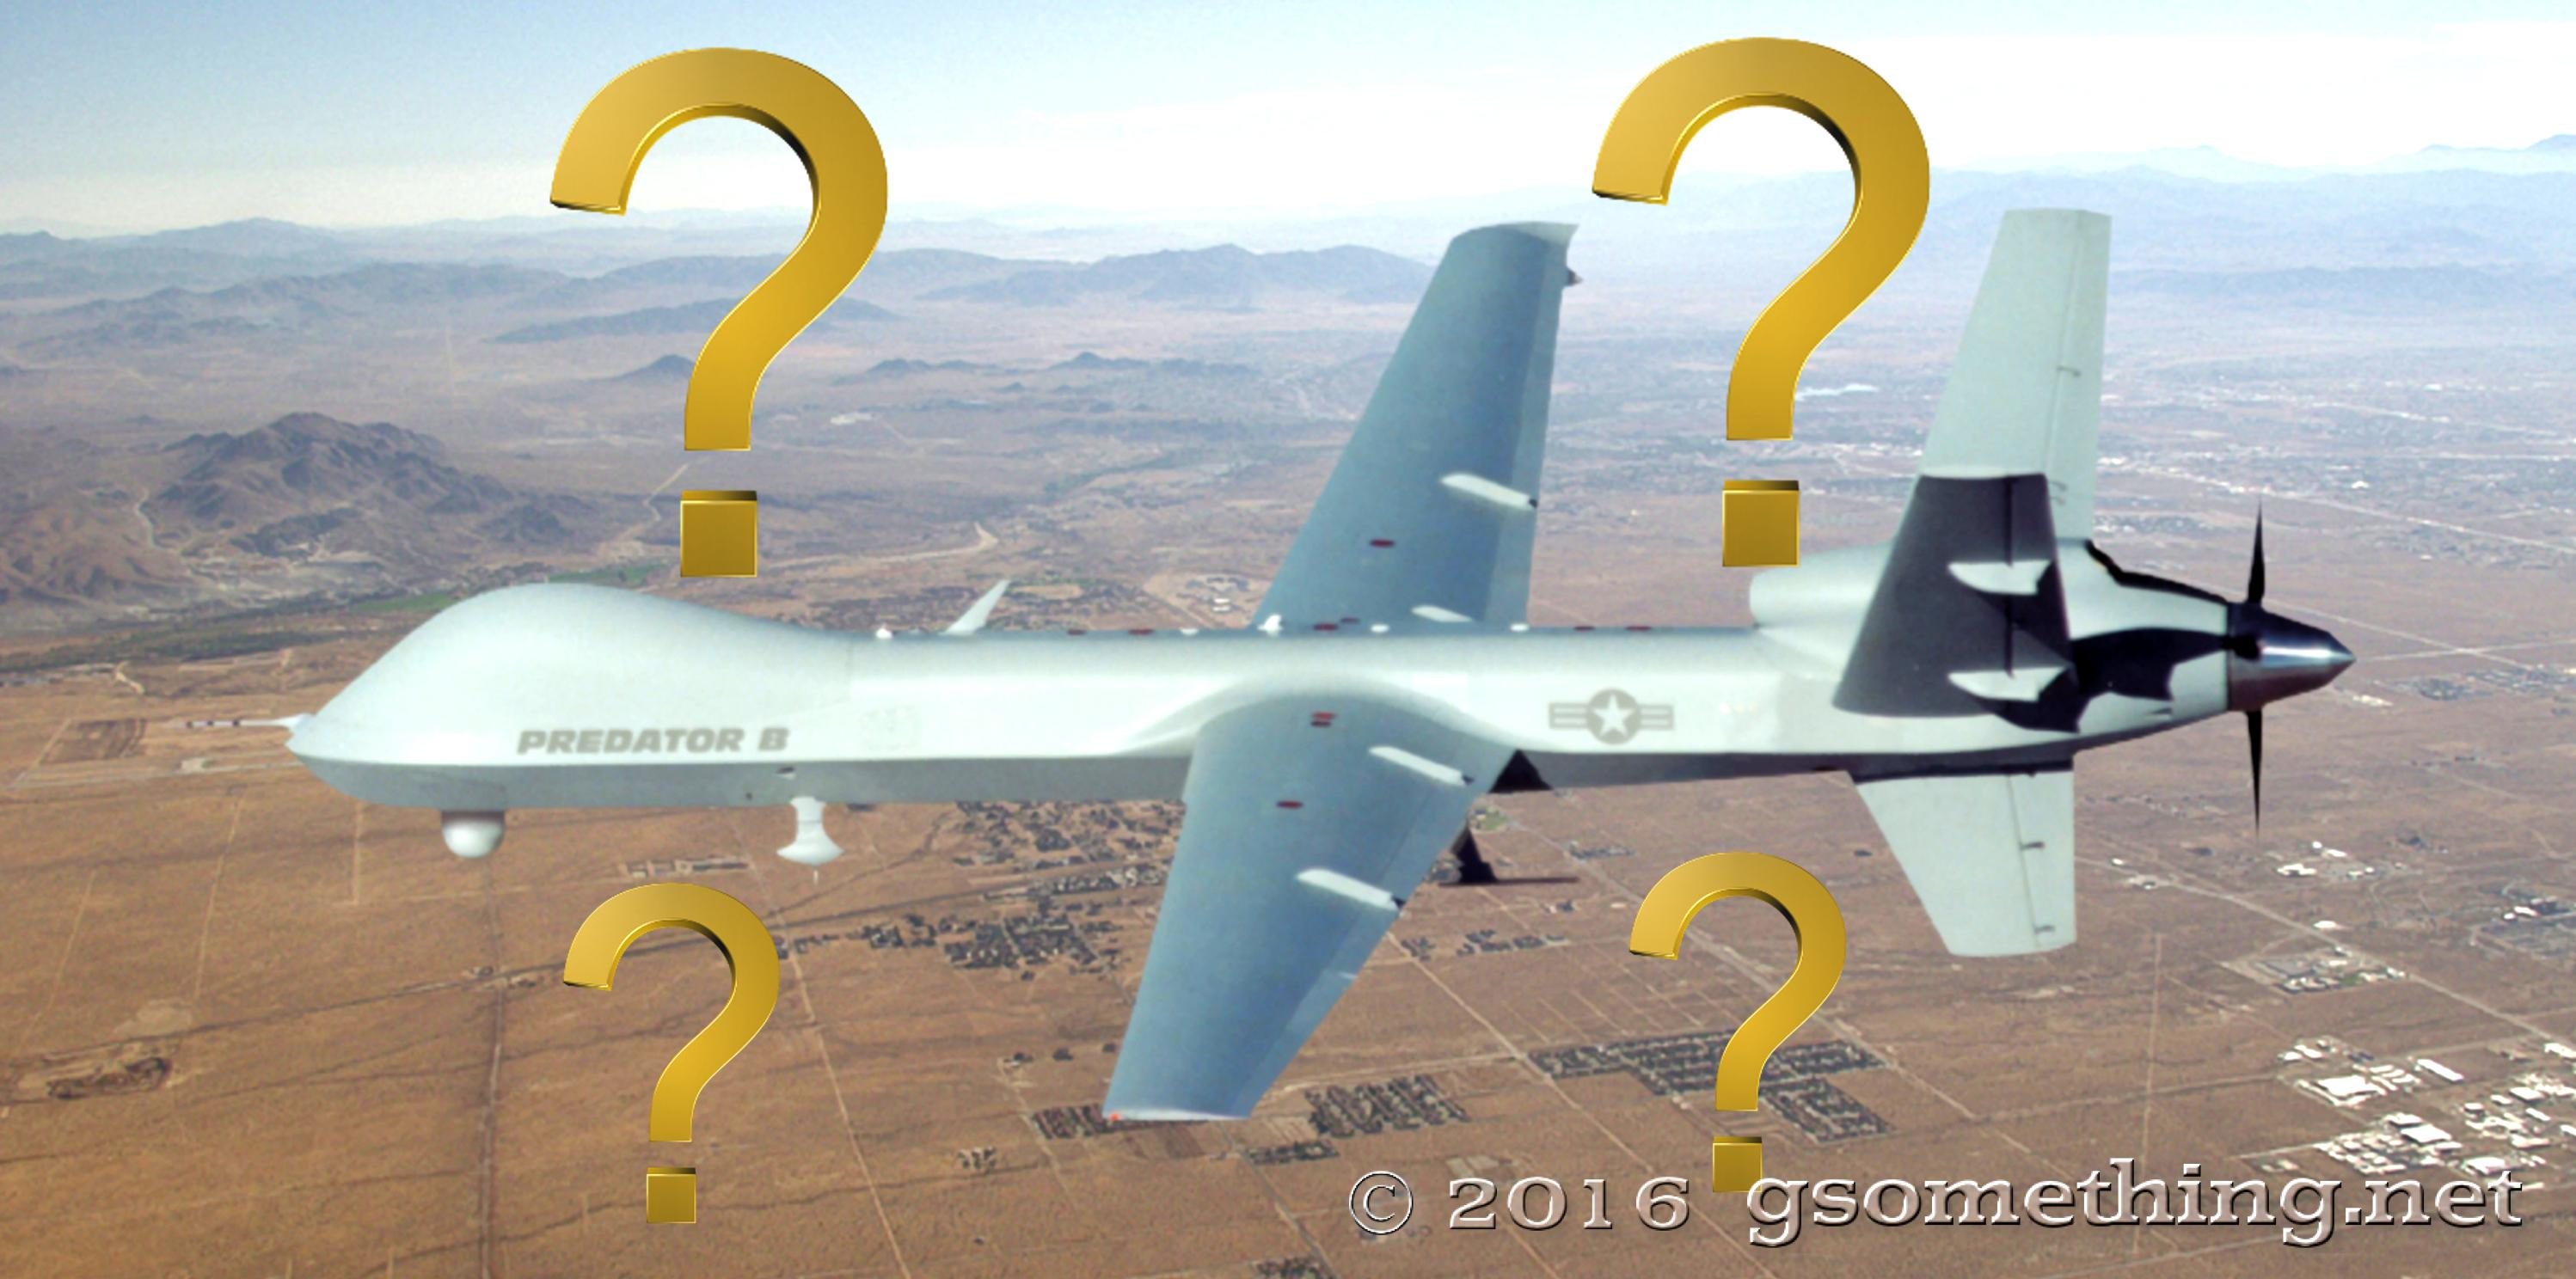 what is, drones?